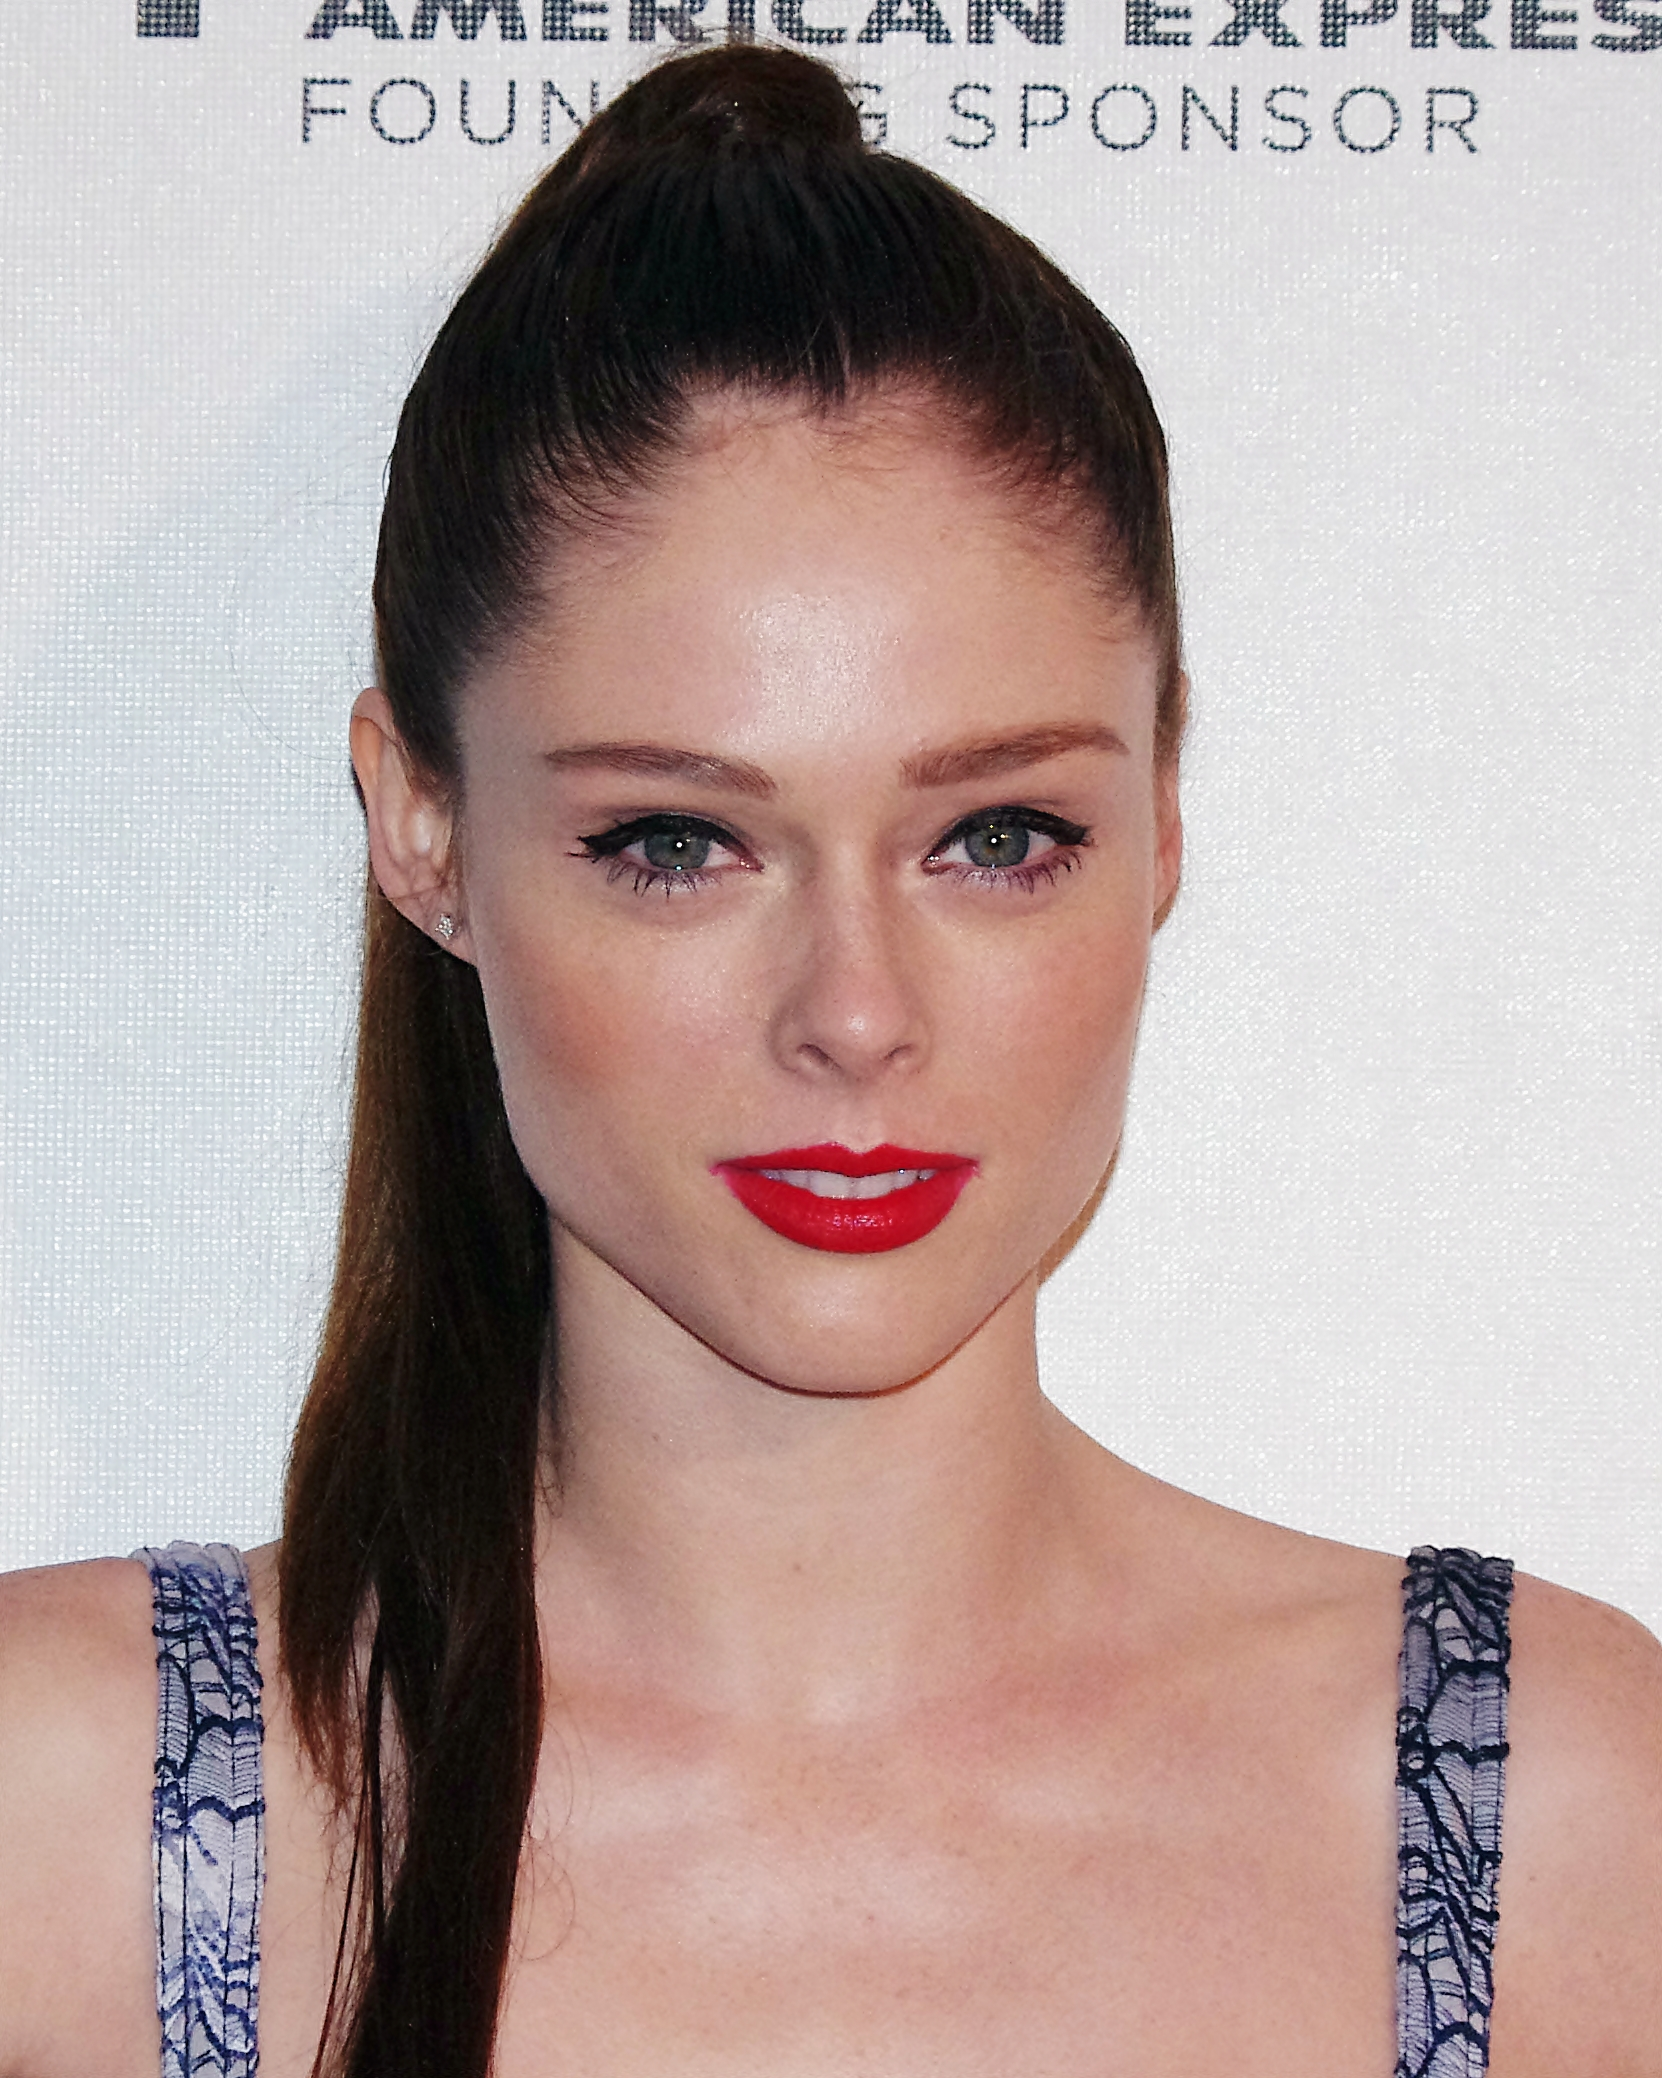 The 32-year old daughter of father Trevor Haines and mother(?) Coco Rocha in 2021 photo. Coco Rocha earned a  million dollar salary - leaving the net worth at 2 million in 2021